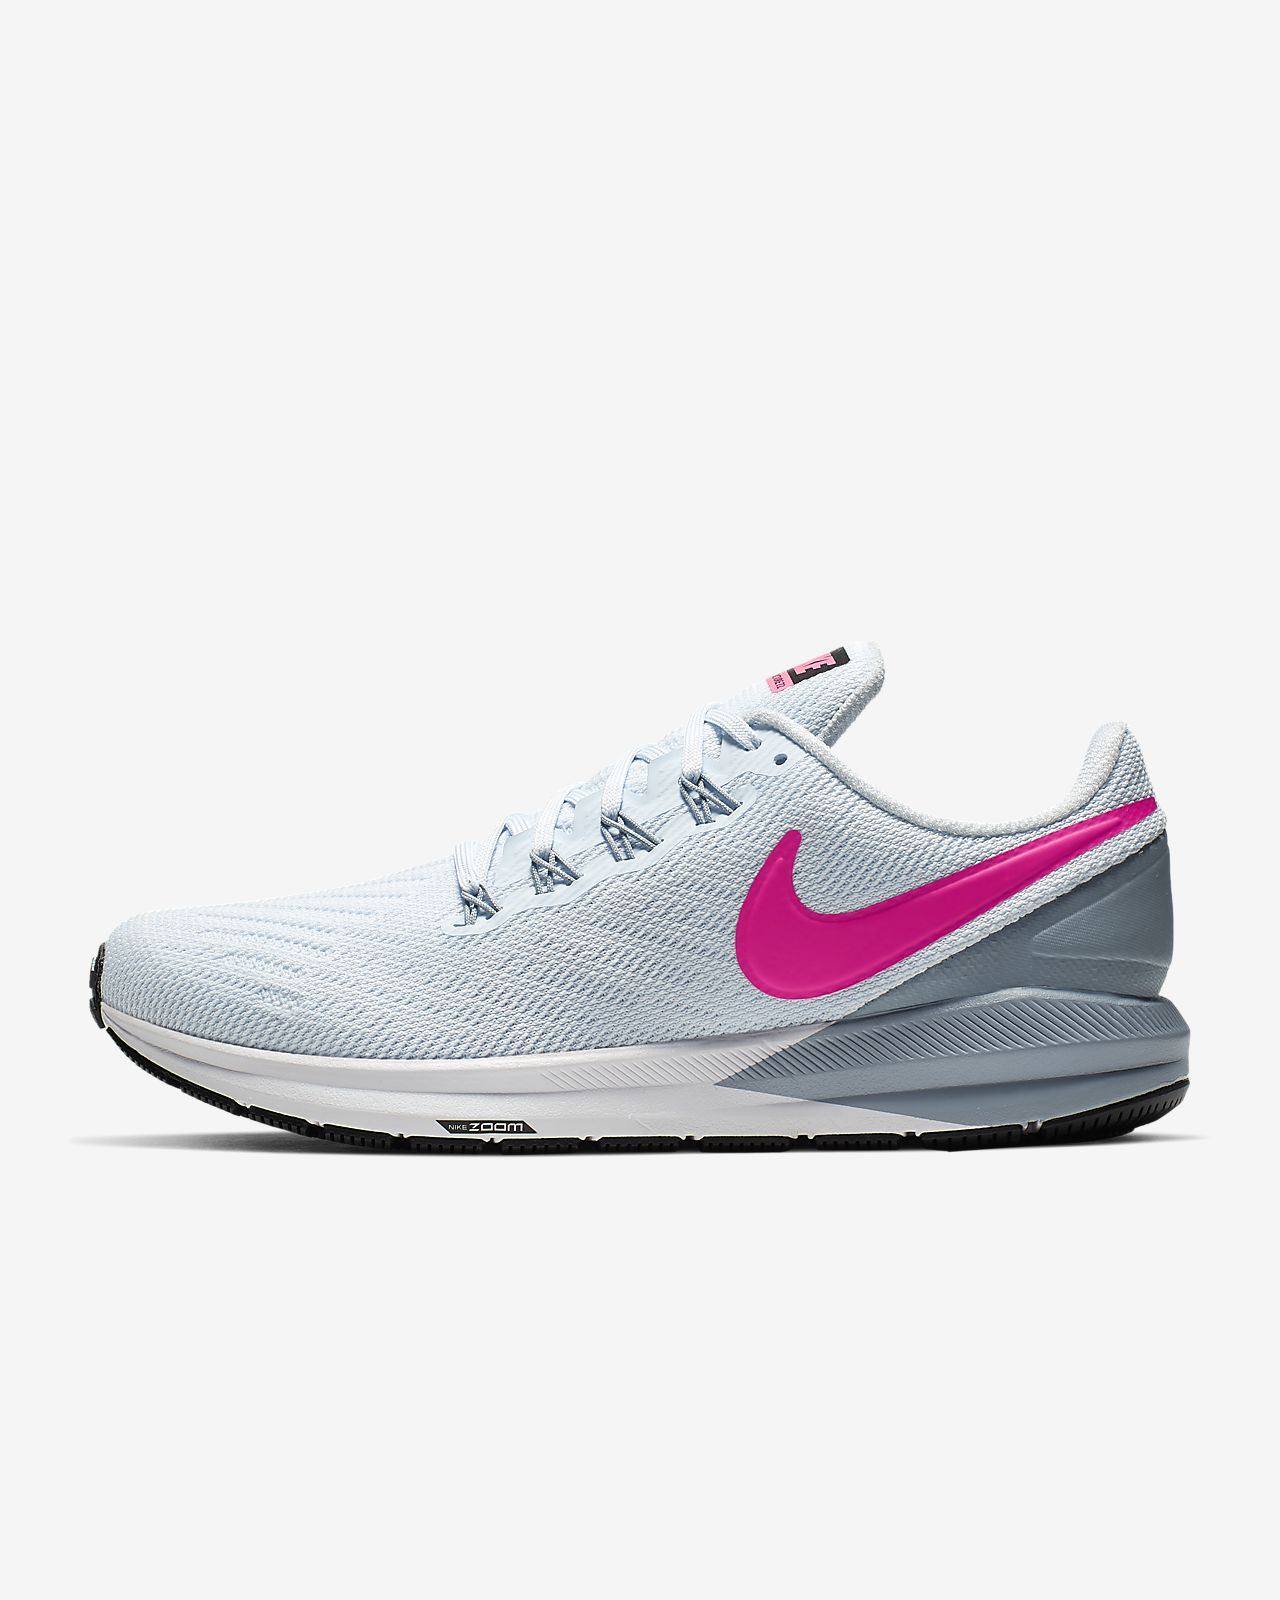 buy online d3d77 e4097 ... Nike Air Zoom Structure 22 Women s Running Shoe